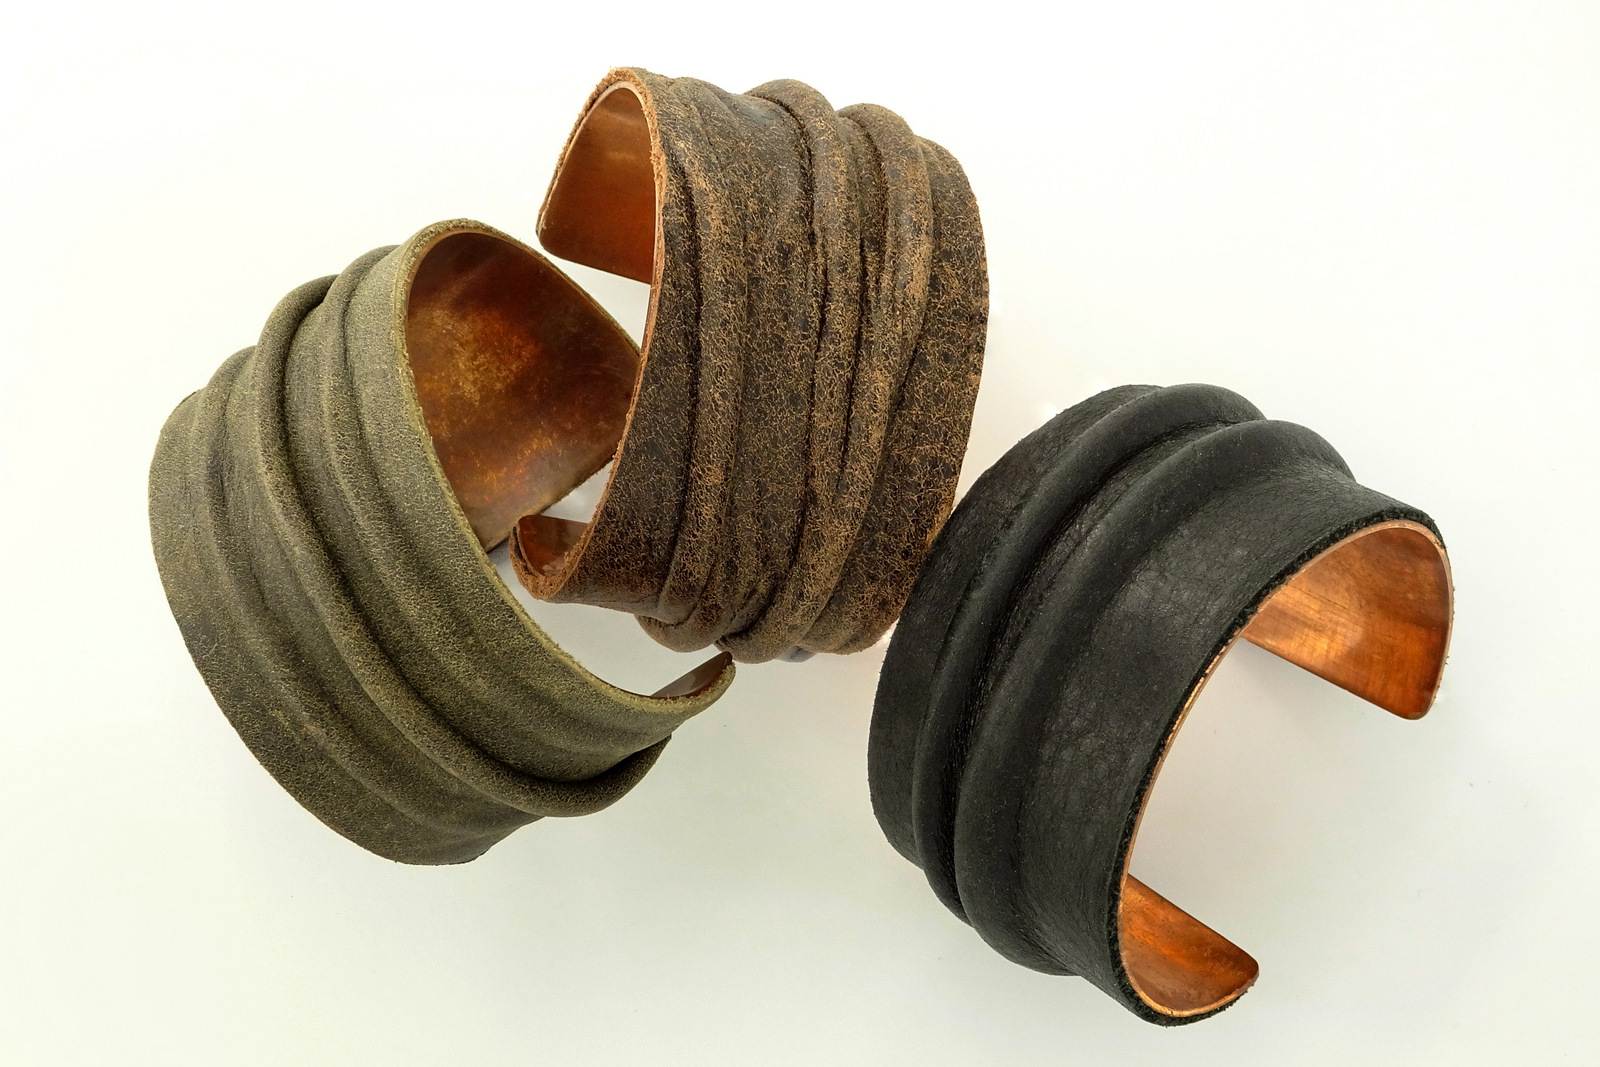 3-Hancrafted Leather Cuff Bracelets, LaPlace Leather, Memphis TN-002.JPG